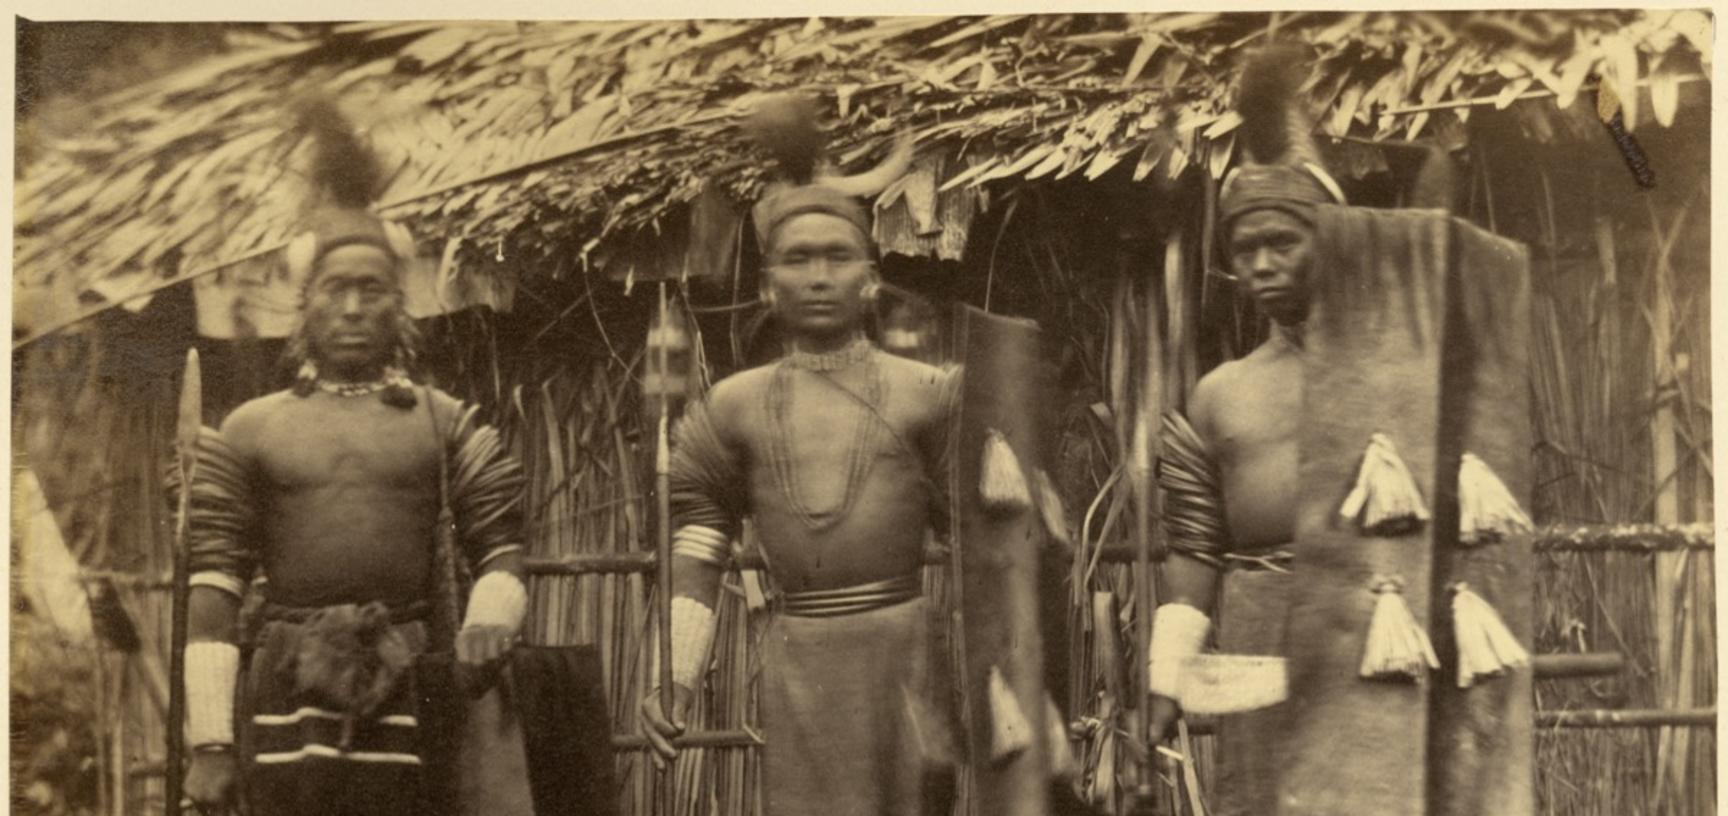 'Konyak Nagas' (handwritten caption). Group portrait of three Konyak Naga men, pictured standing, each holding a shield and a weapon (spear or dao). Photographer unknown. Naga Hills District of Assam (now in Nagaland), India. 1873–1874. (Copyright Pitt Ri